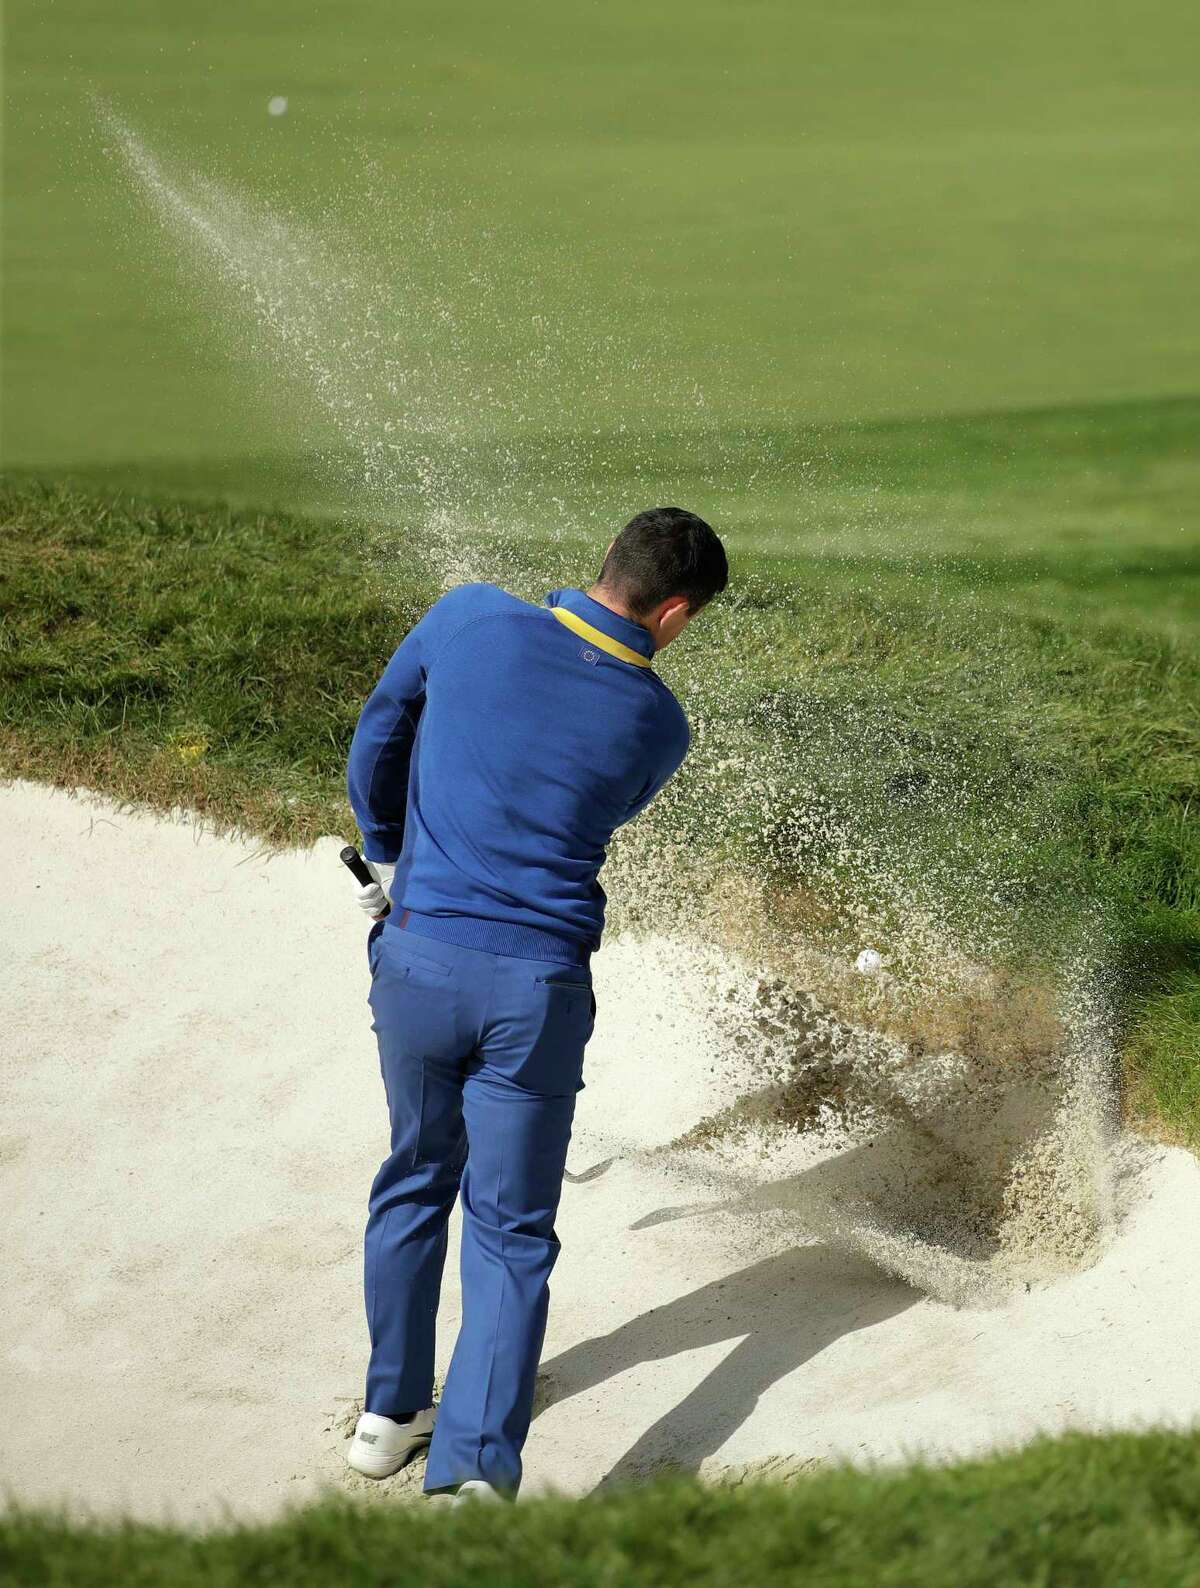 Europe's Rory McIlroy fails to get out of a bunker on the 18th hole during a singles match on the final day of the 42nd Ryder Cup at Le Golf National in Saint-Quentin-en-Yvelines, outside Paris, France, Sunday, Sept. 30, 2018. Europe's Rory McIlroy lost to Justin Thomas of the US. (AP Photo/Matt Dunham)